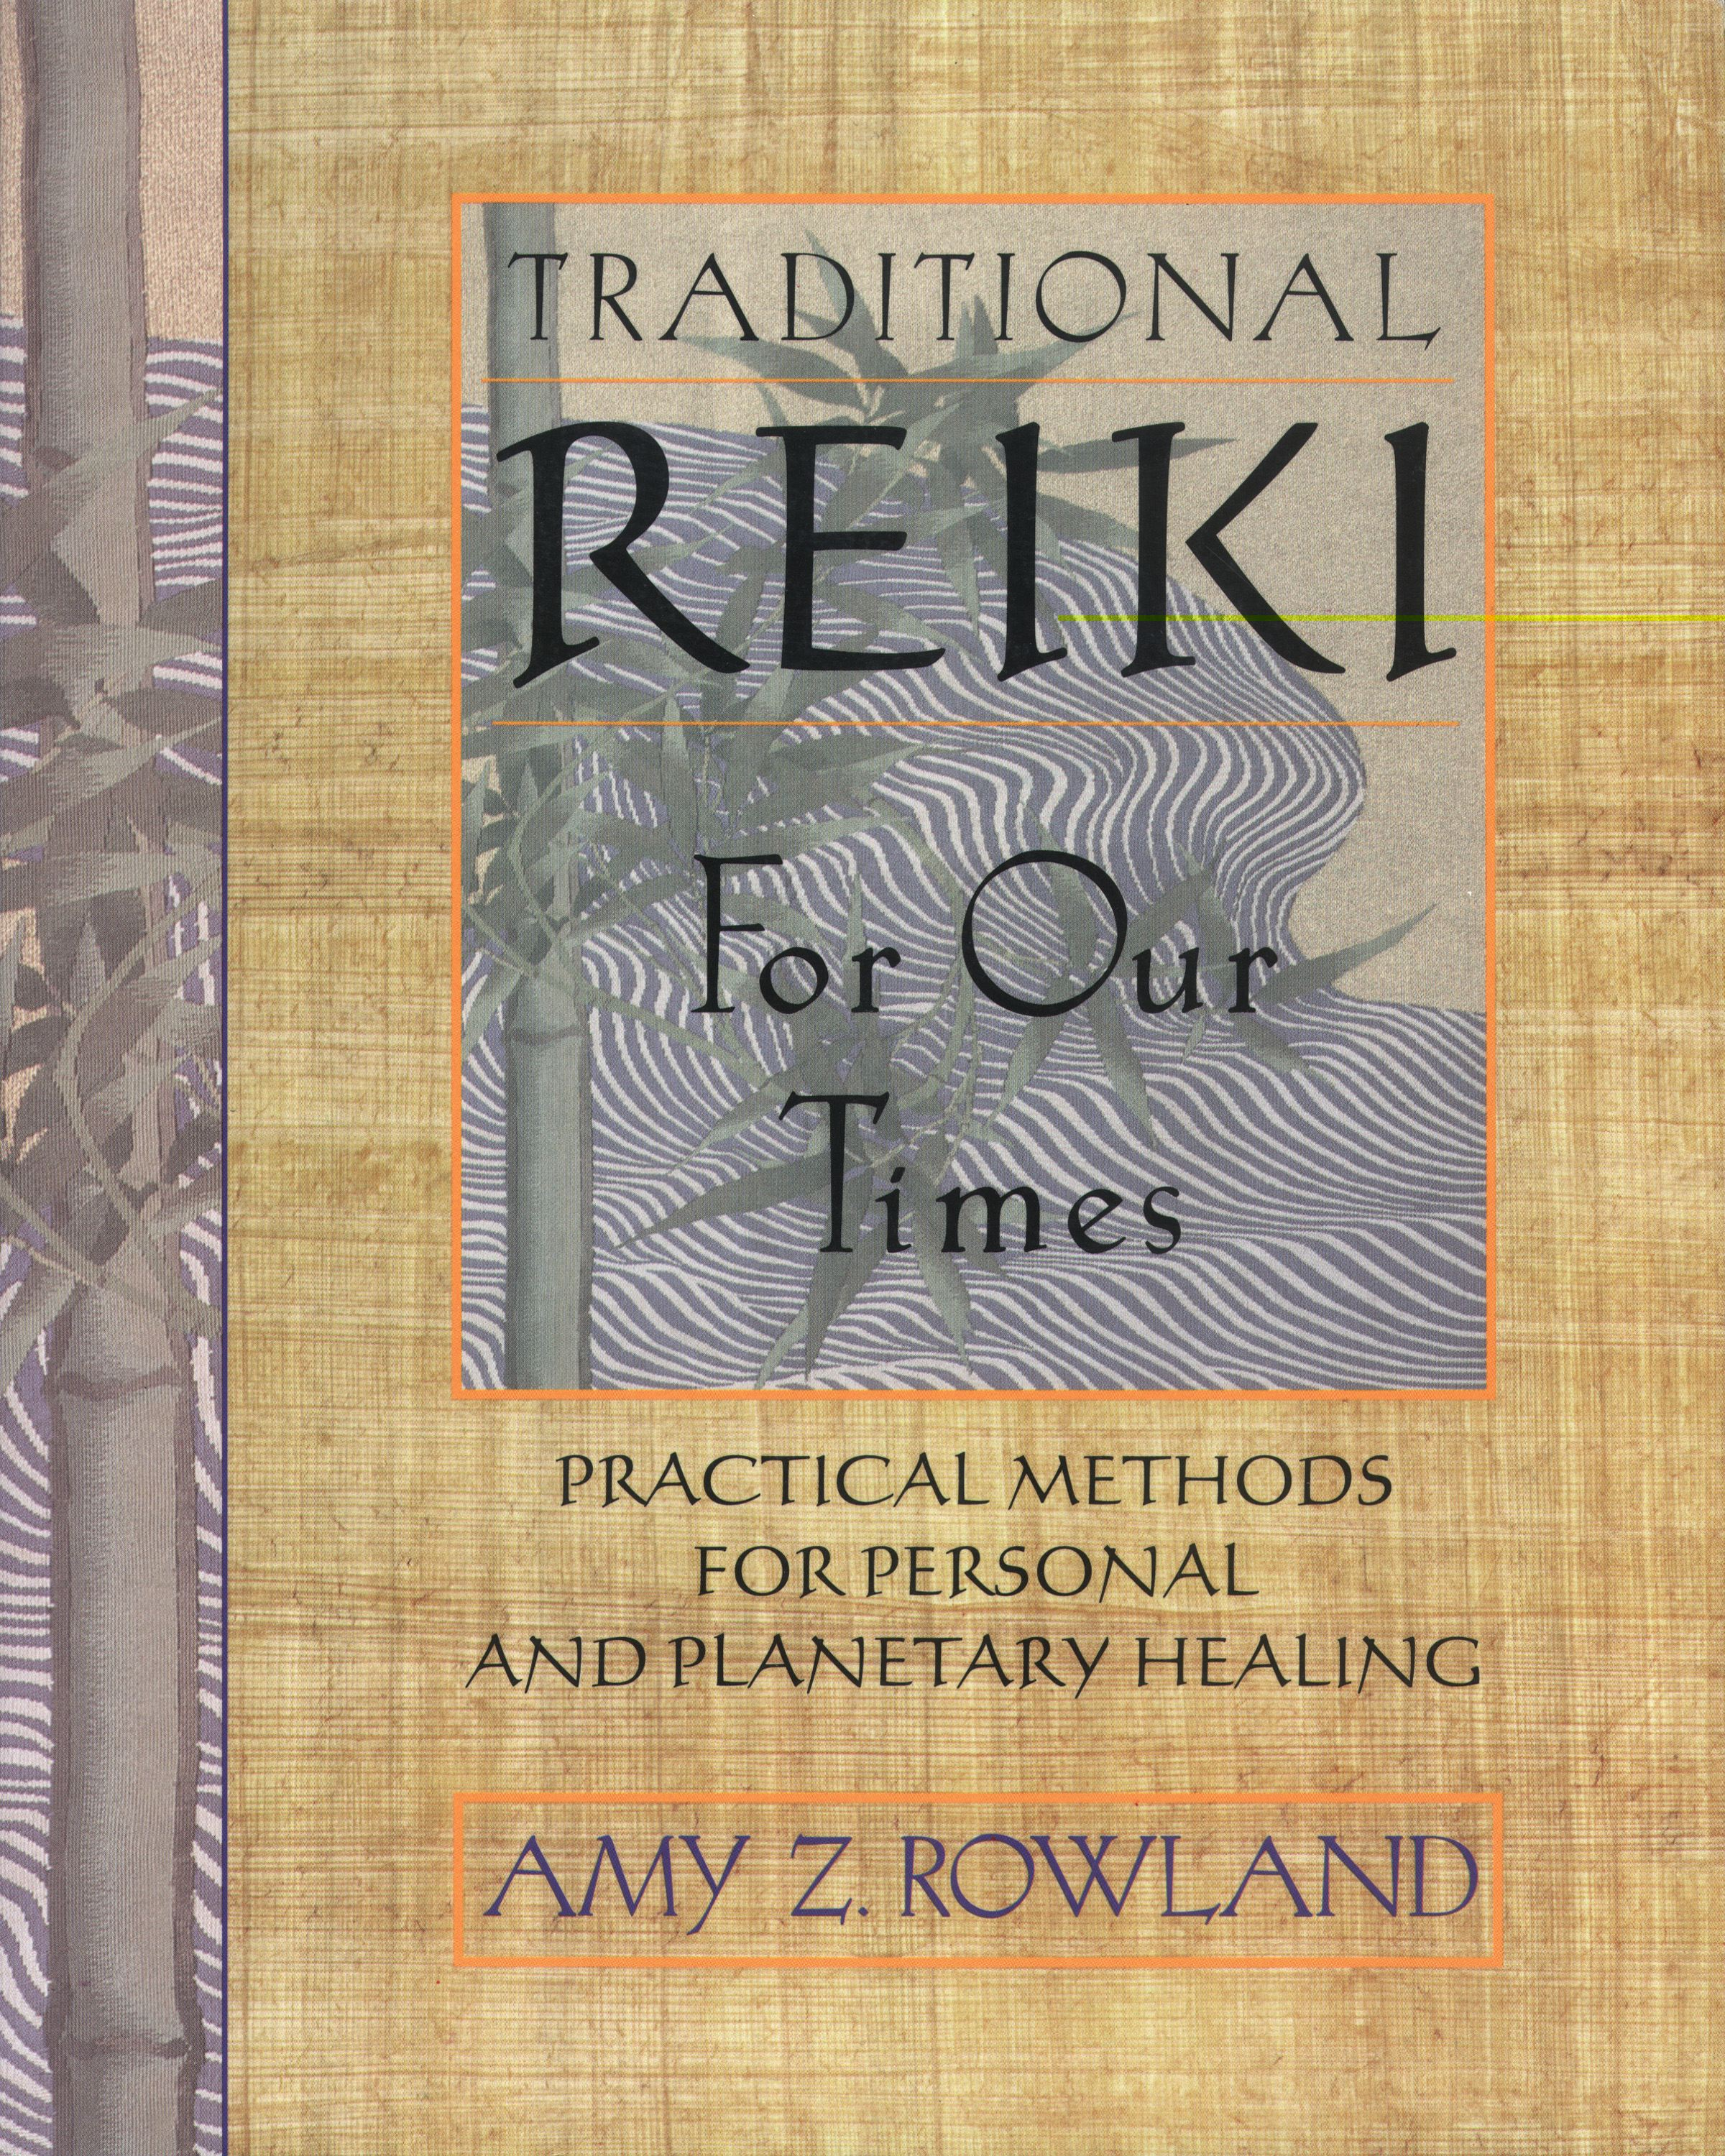 Traditional reiki for our times 9780892817771 hr